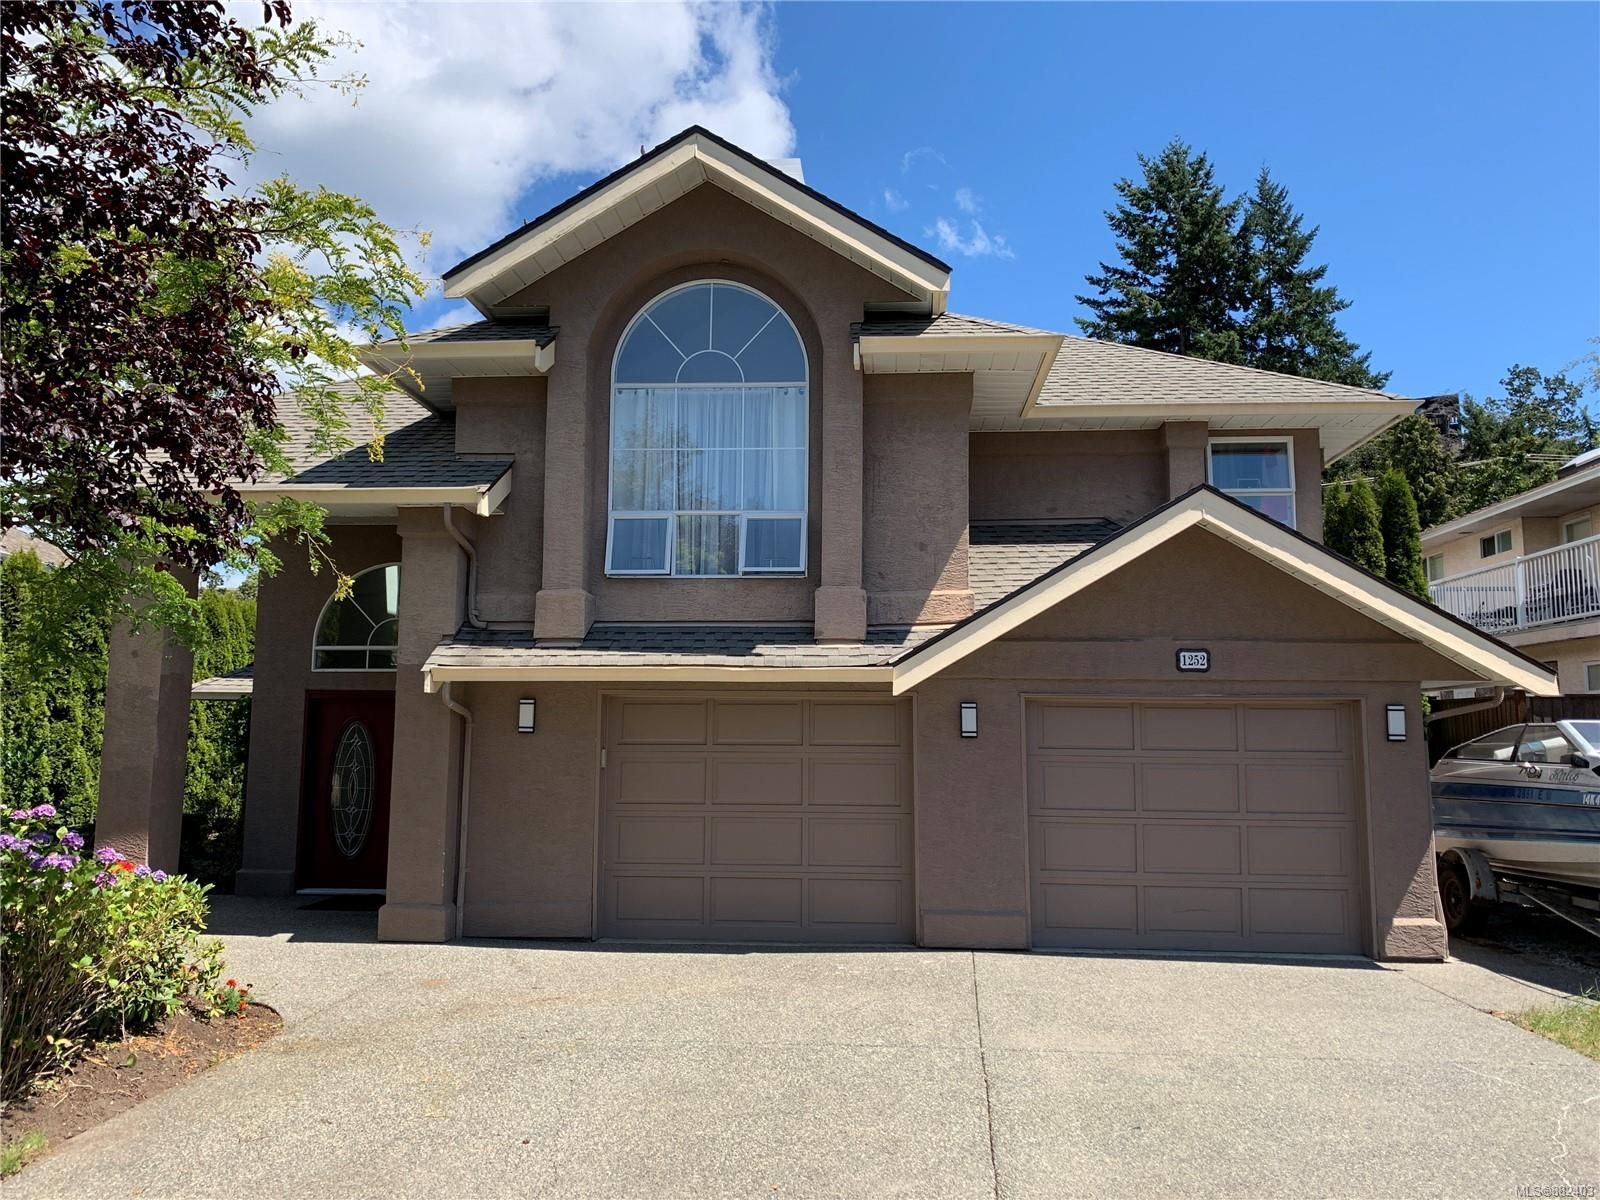 Main Photo: 1252 Crofton Terr in : SE Sunnymead House for sale (Saanich East)  : MLS®# 882403